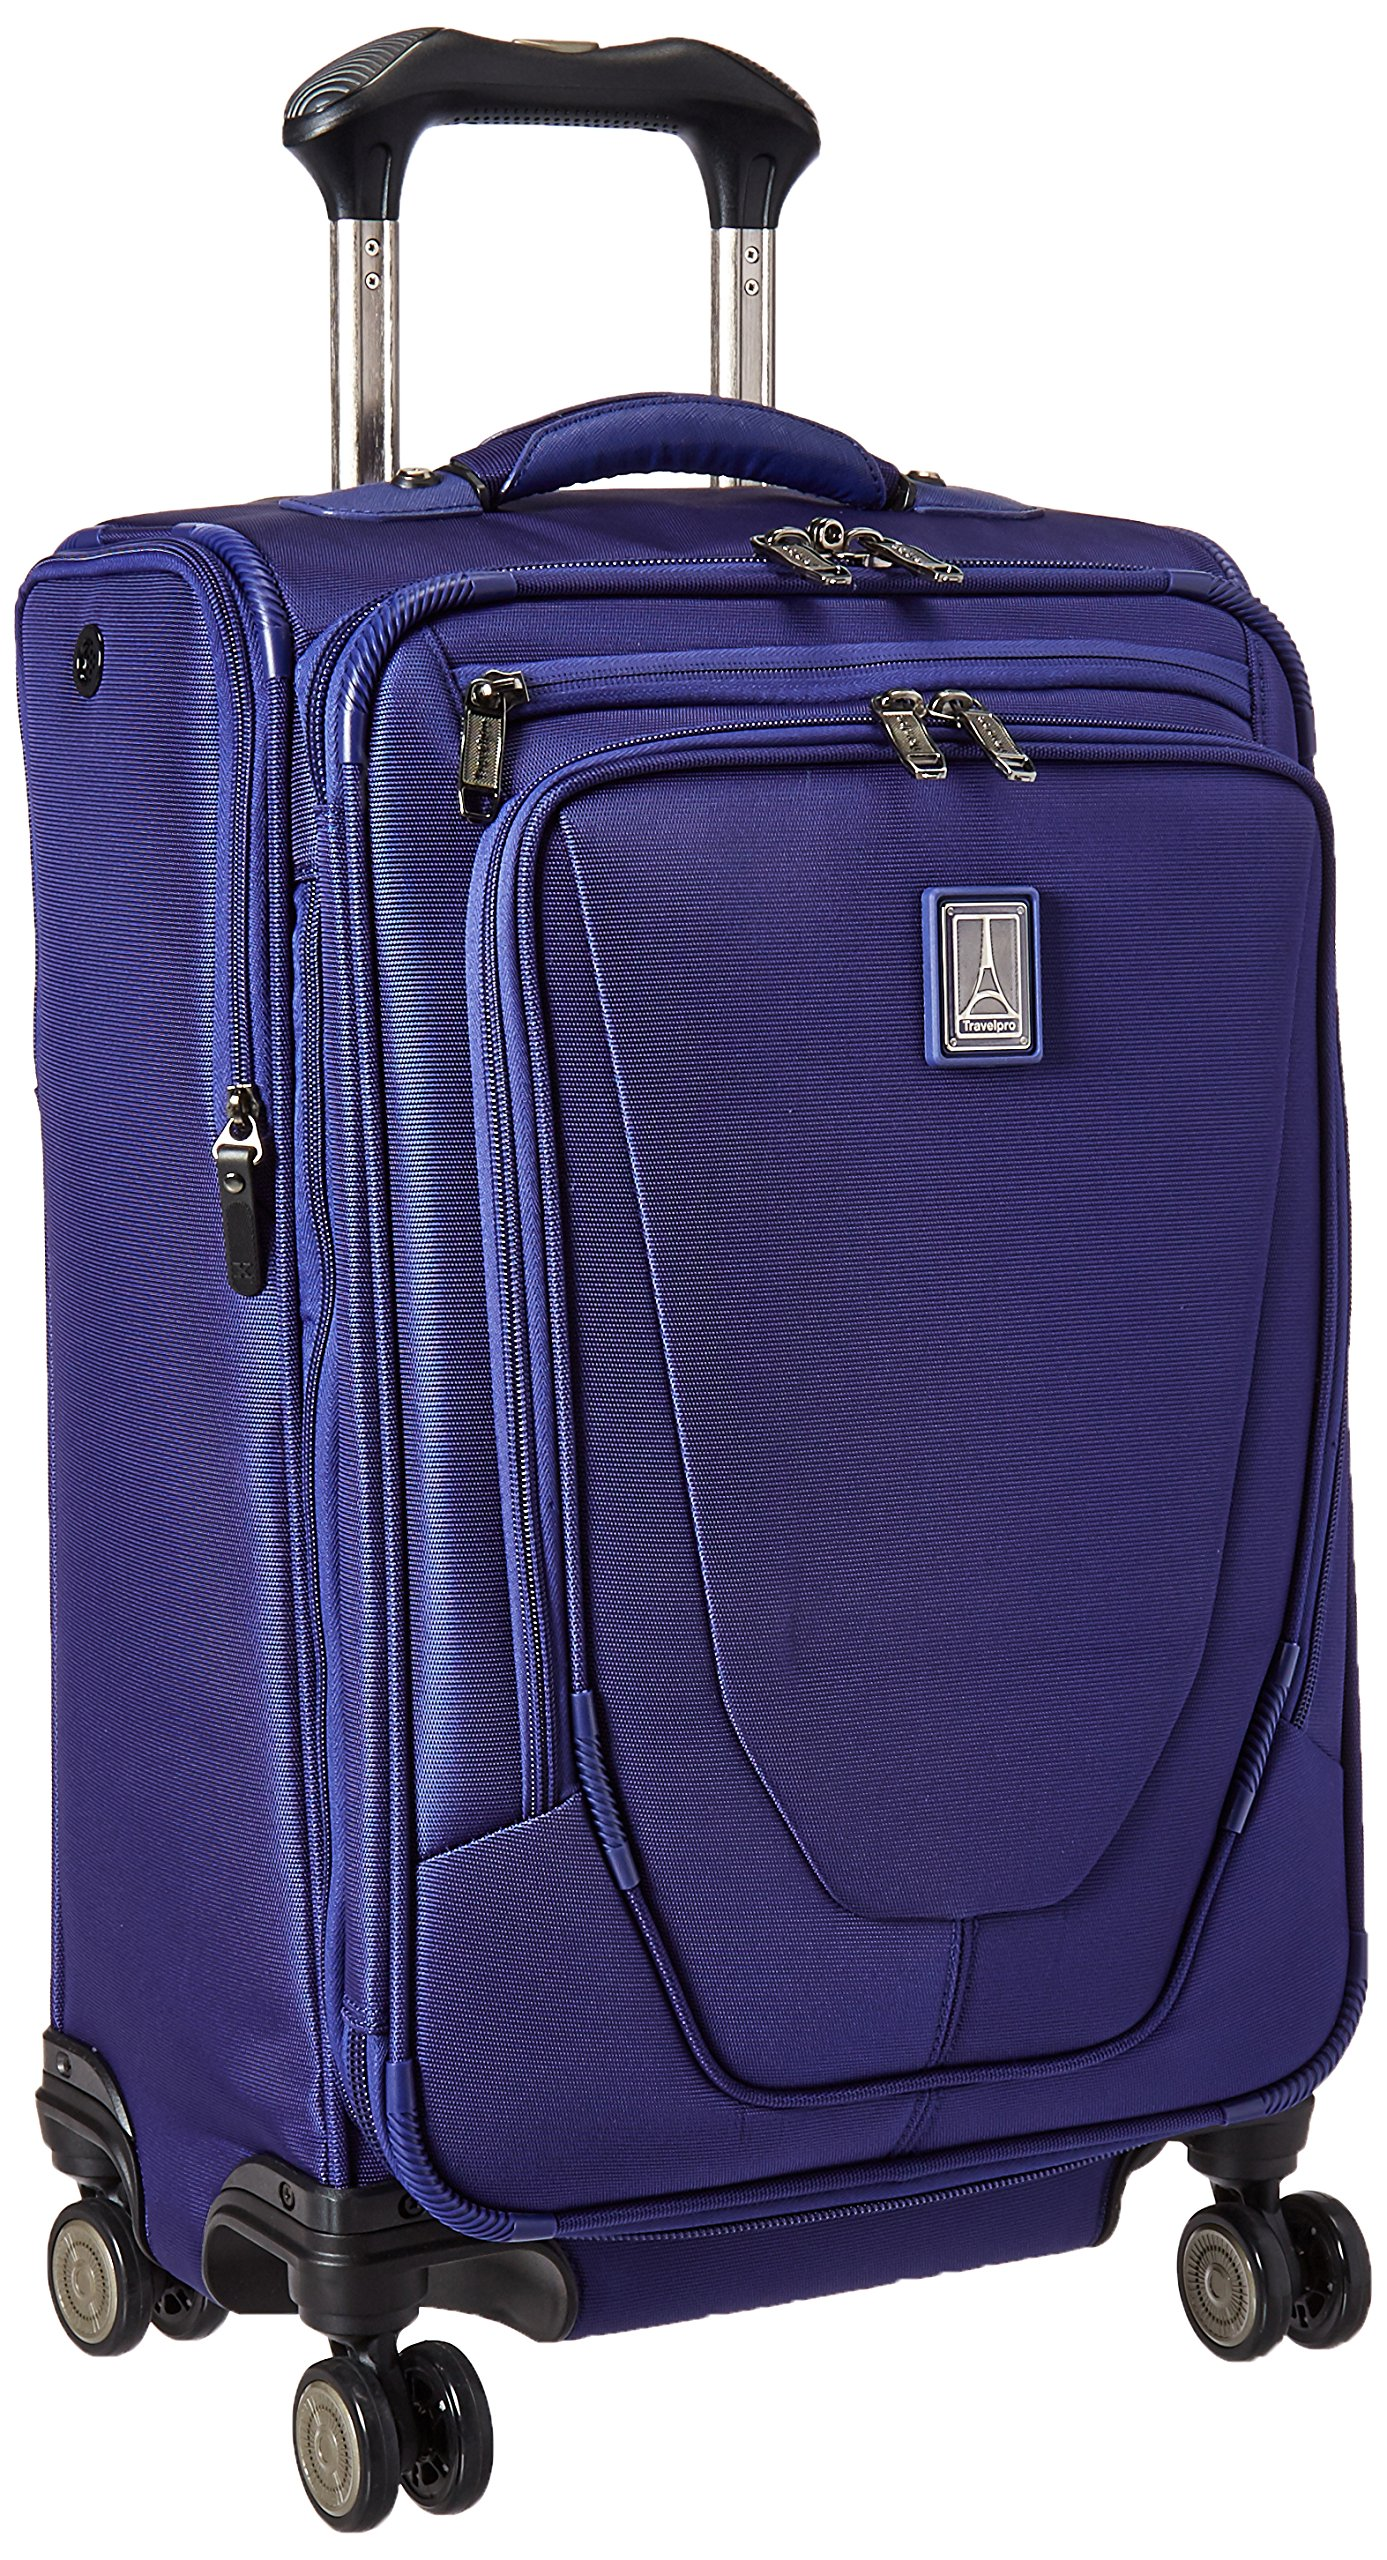 Travelpro Crew 11 21'' Expandable Spinner Carry-on Suiter Suitcase, Indigo by Travelpro